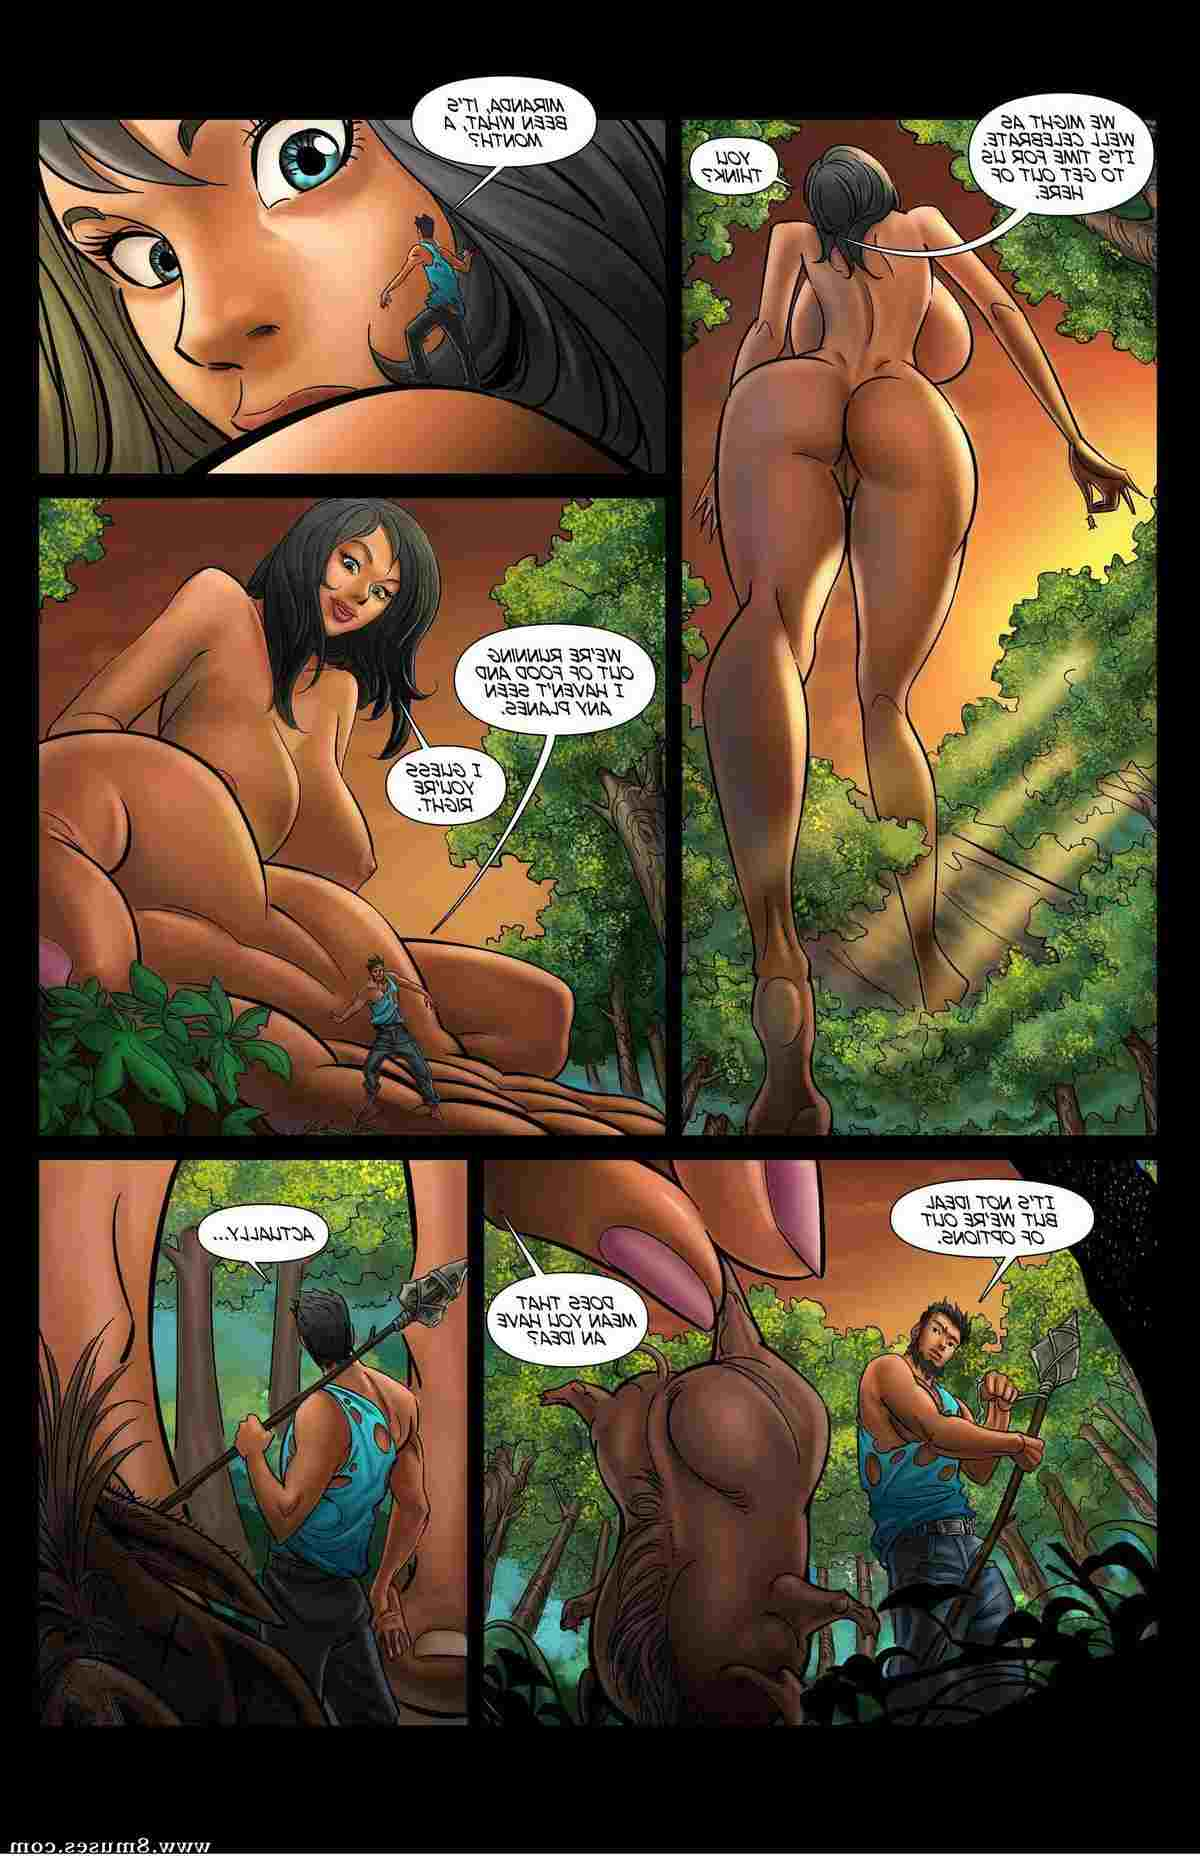 Giantess-Club-Comics/Going-Down-Growing-Up Going_Down_Growing_Up__8muses_-_Sex_and_Porn_Comics_26.jpg